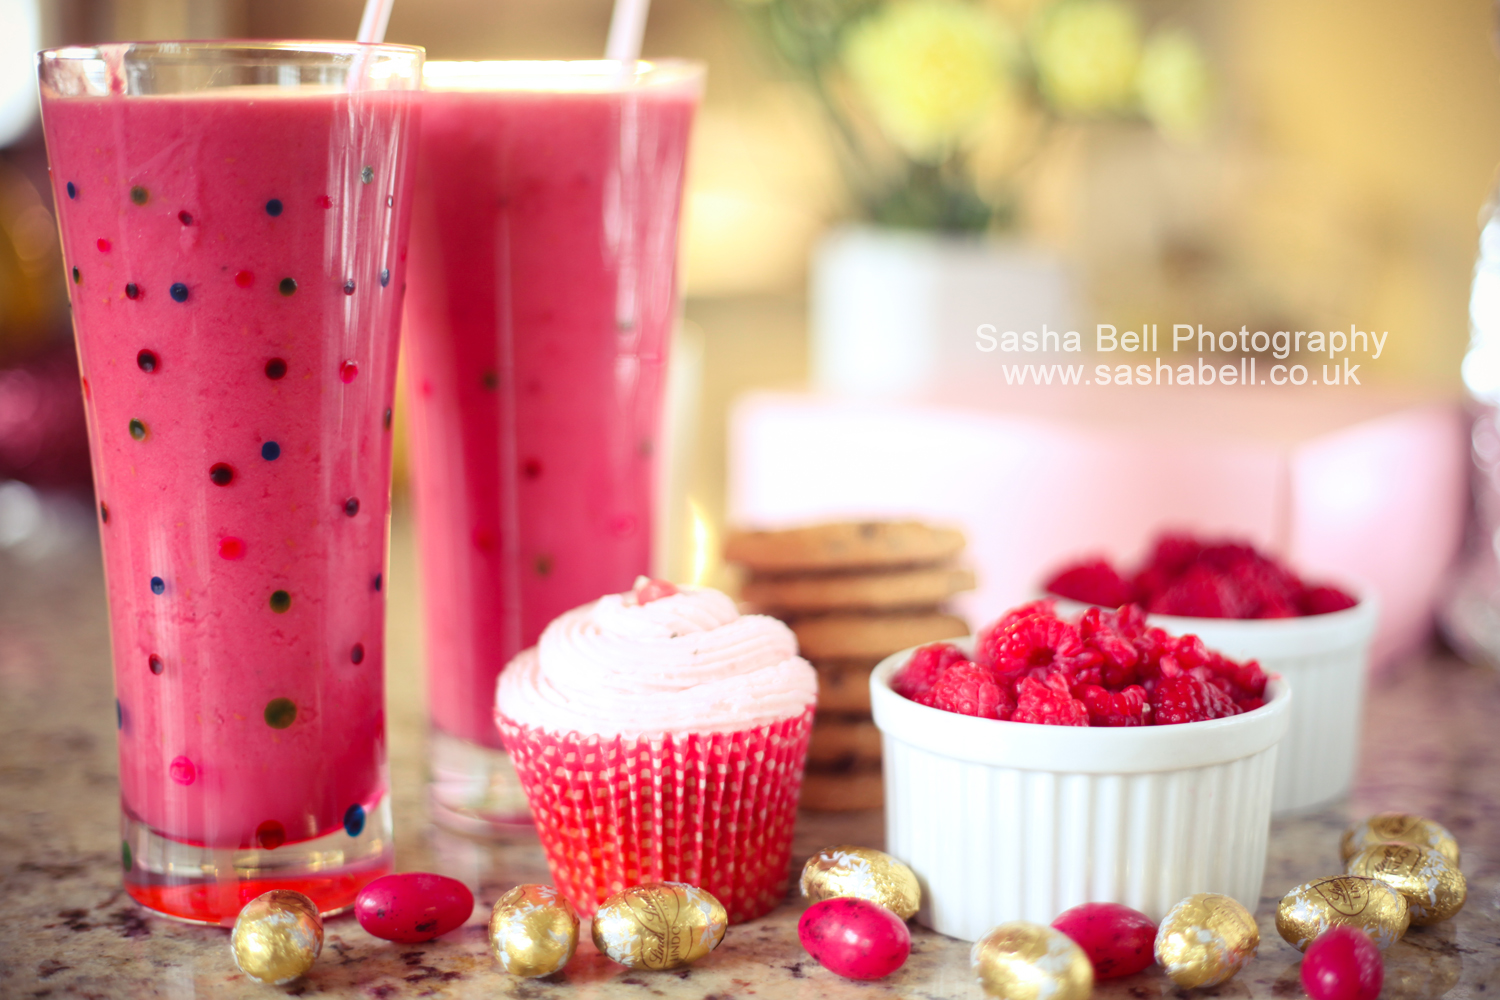 Raspberries and Raspberry Smoothies – Day 186/365